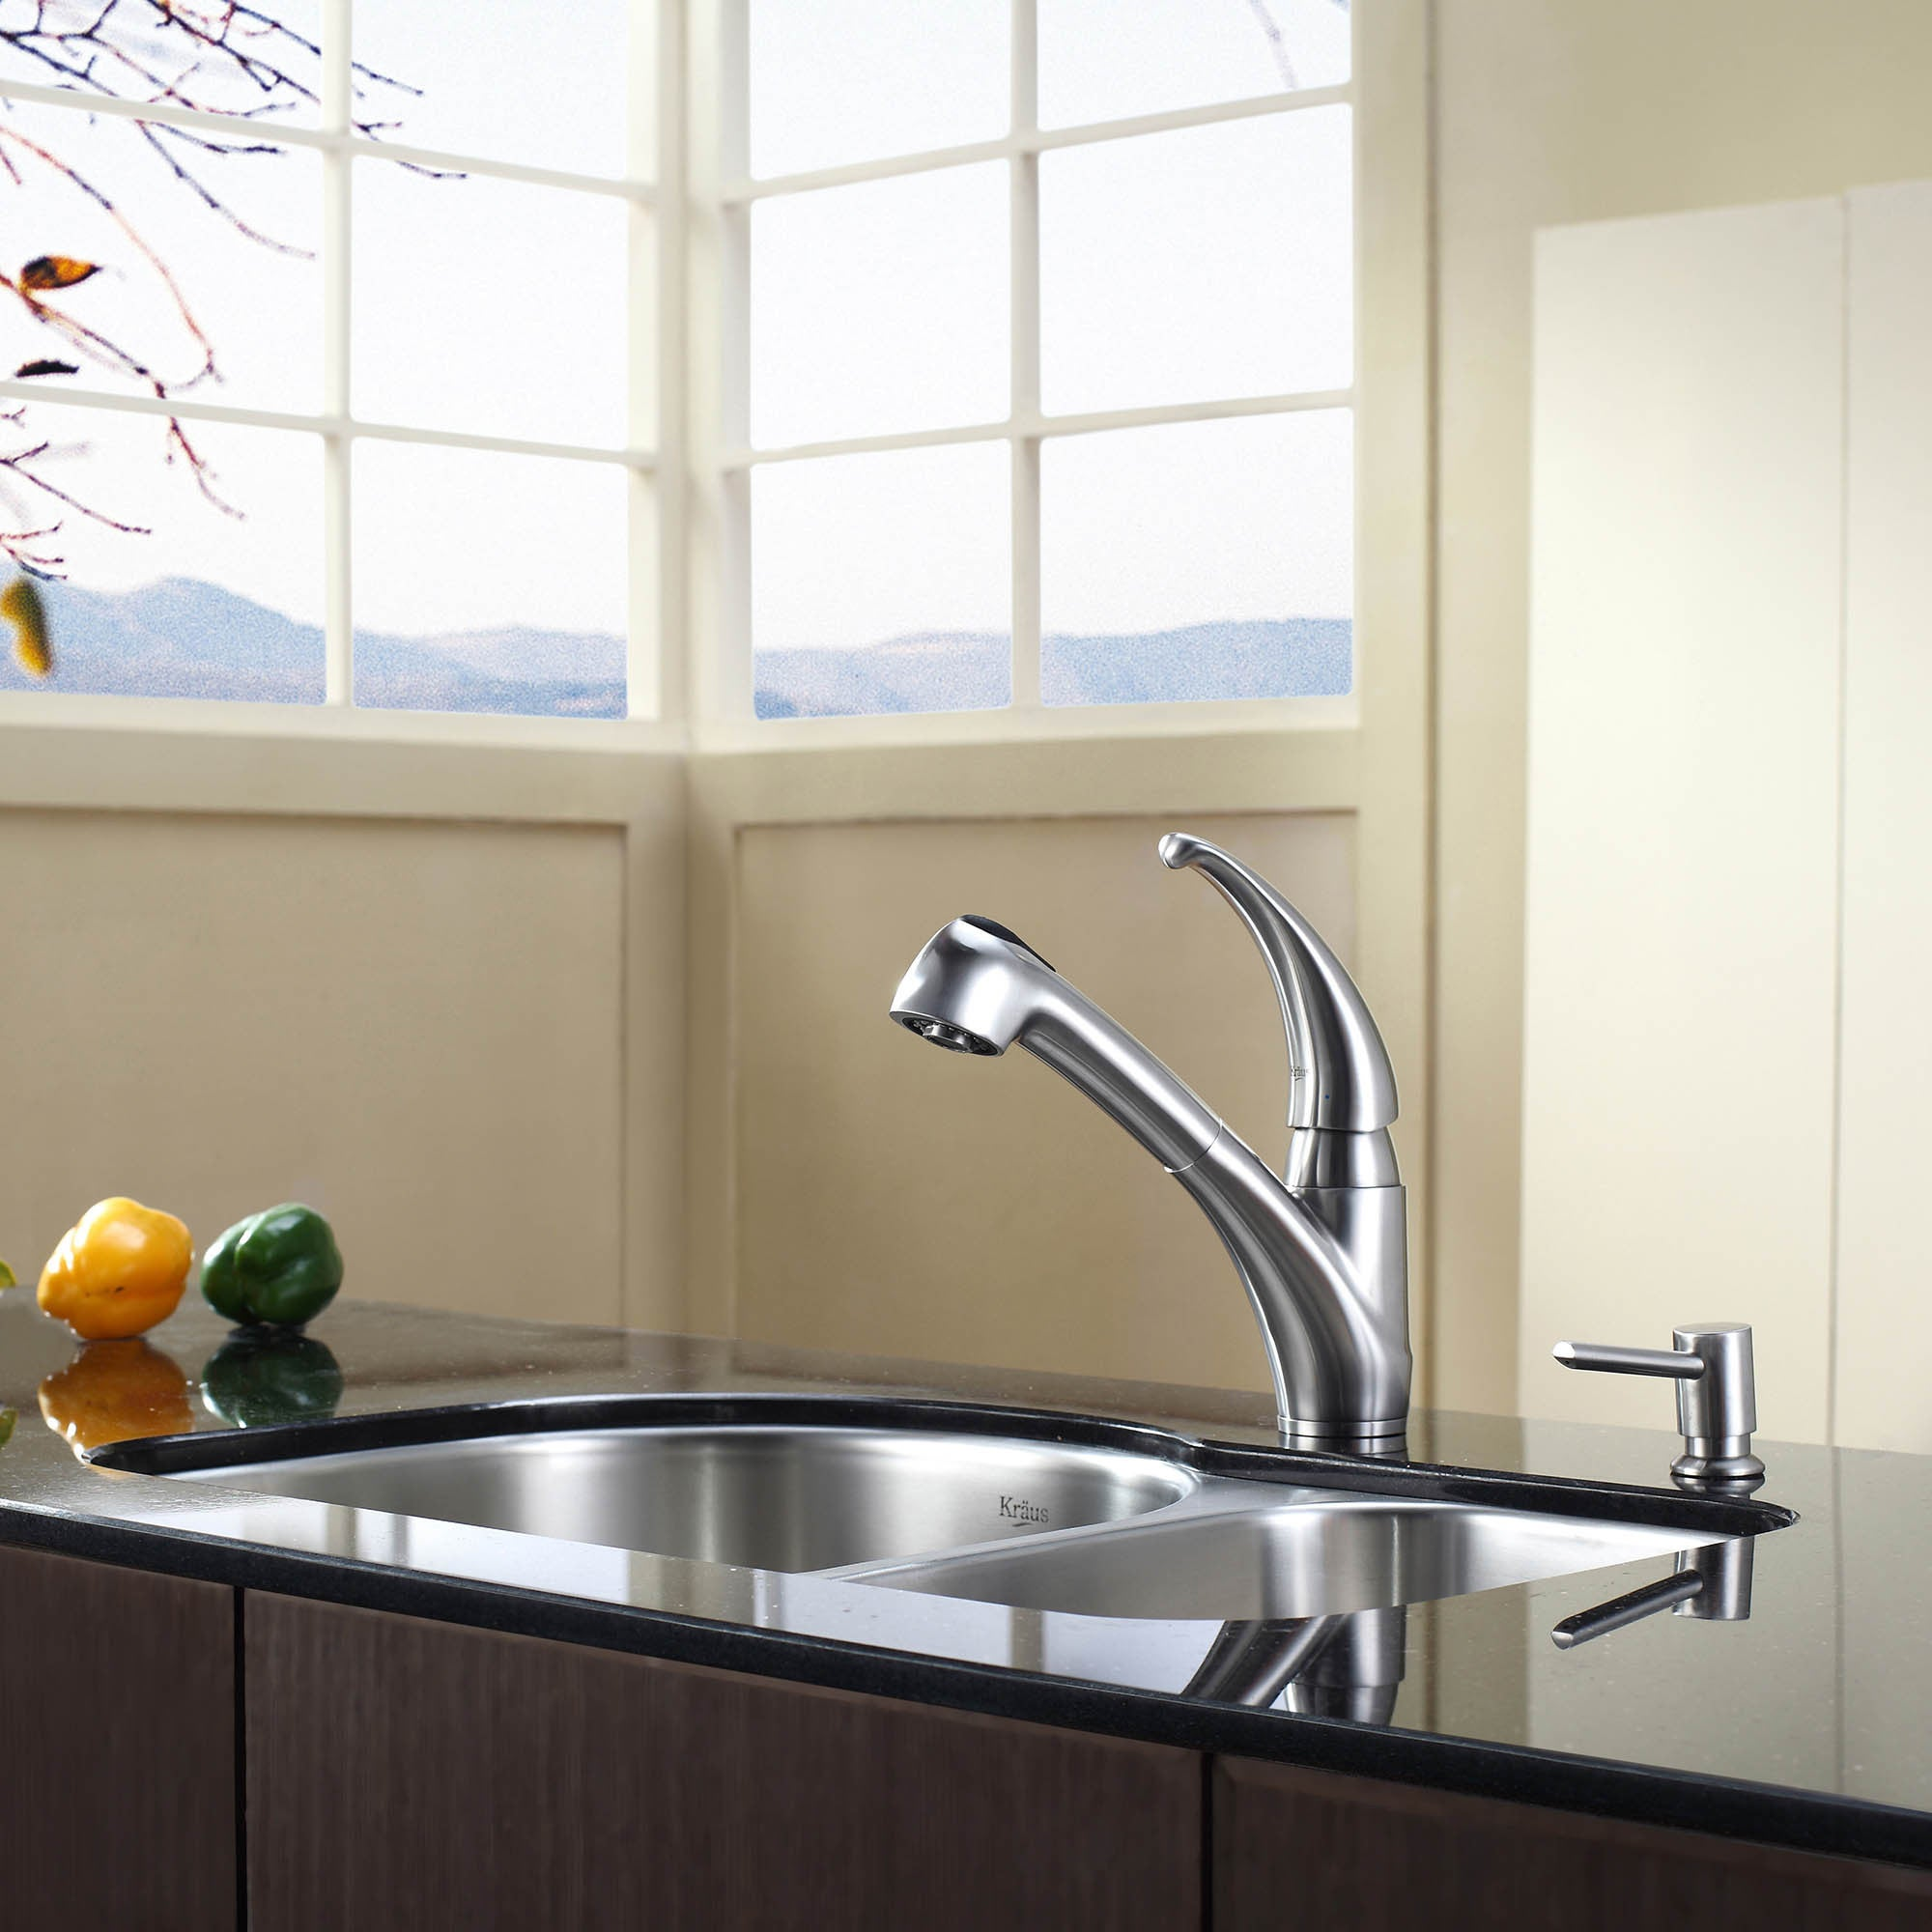 KRAUS Single Handle Solid Stainless Steel Kitchen Faucet with Pull